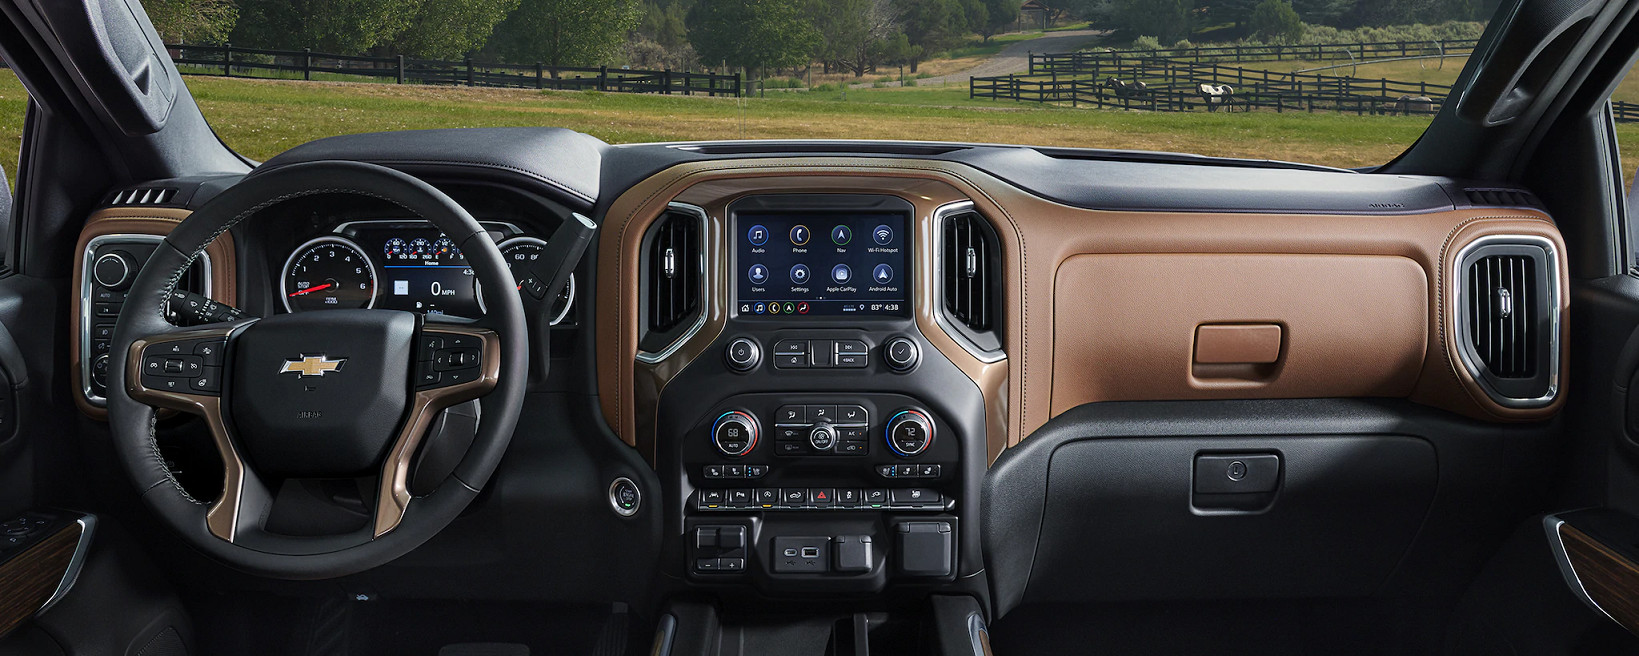 Trailering Tech in the 2020 Silverado 1500